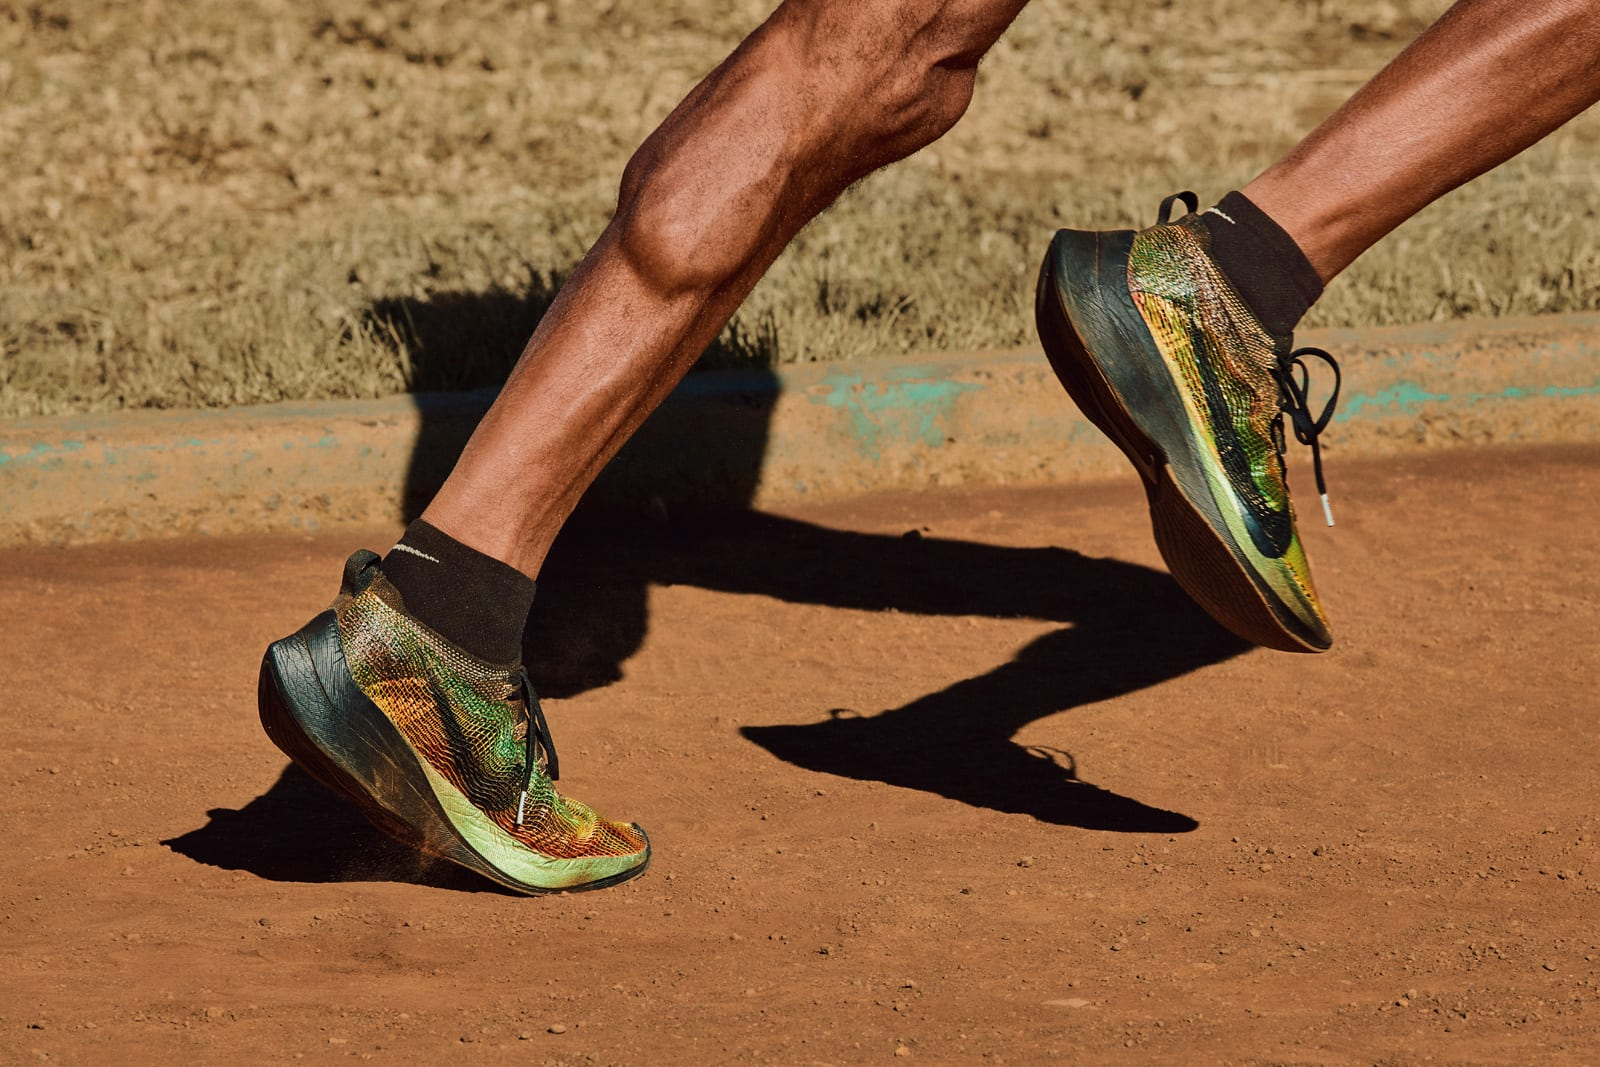 Nike's 3D-printed textiles make running shoes even lighter how engadget staffers are finding solace during the coronavirus crisis - 4cb086b0446f10078461844990961080 client a1acac3e1b3290917d92 signature 5f2f6da7e8f259c266fa556a412bce3359389cd3 - How Engadget staffers are finding solace during the coronavirus crisis how engadget staffers are finding solace during the coronavirus crisis - 4cb086b0446f10078461844990961080 client a1acac3e1b3290917d92 signature 5f2f6da7e8f259c266fa556a412bce3359389cd3 - How Engadget staffers are finding solace during the coronavirus crisis